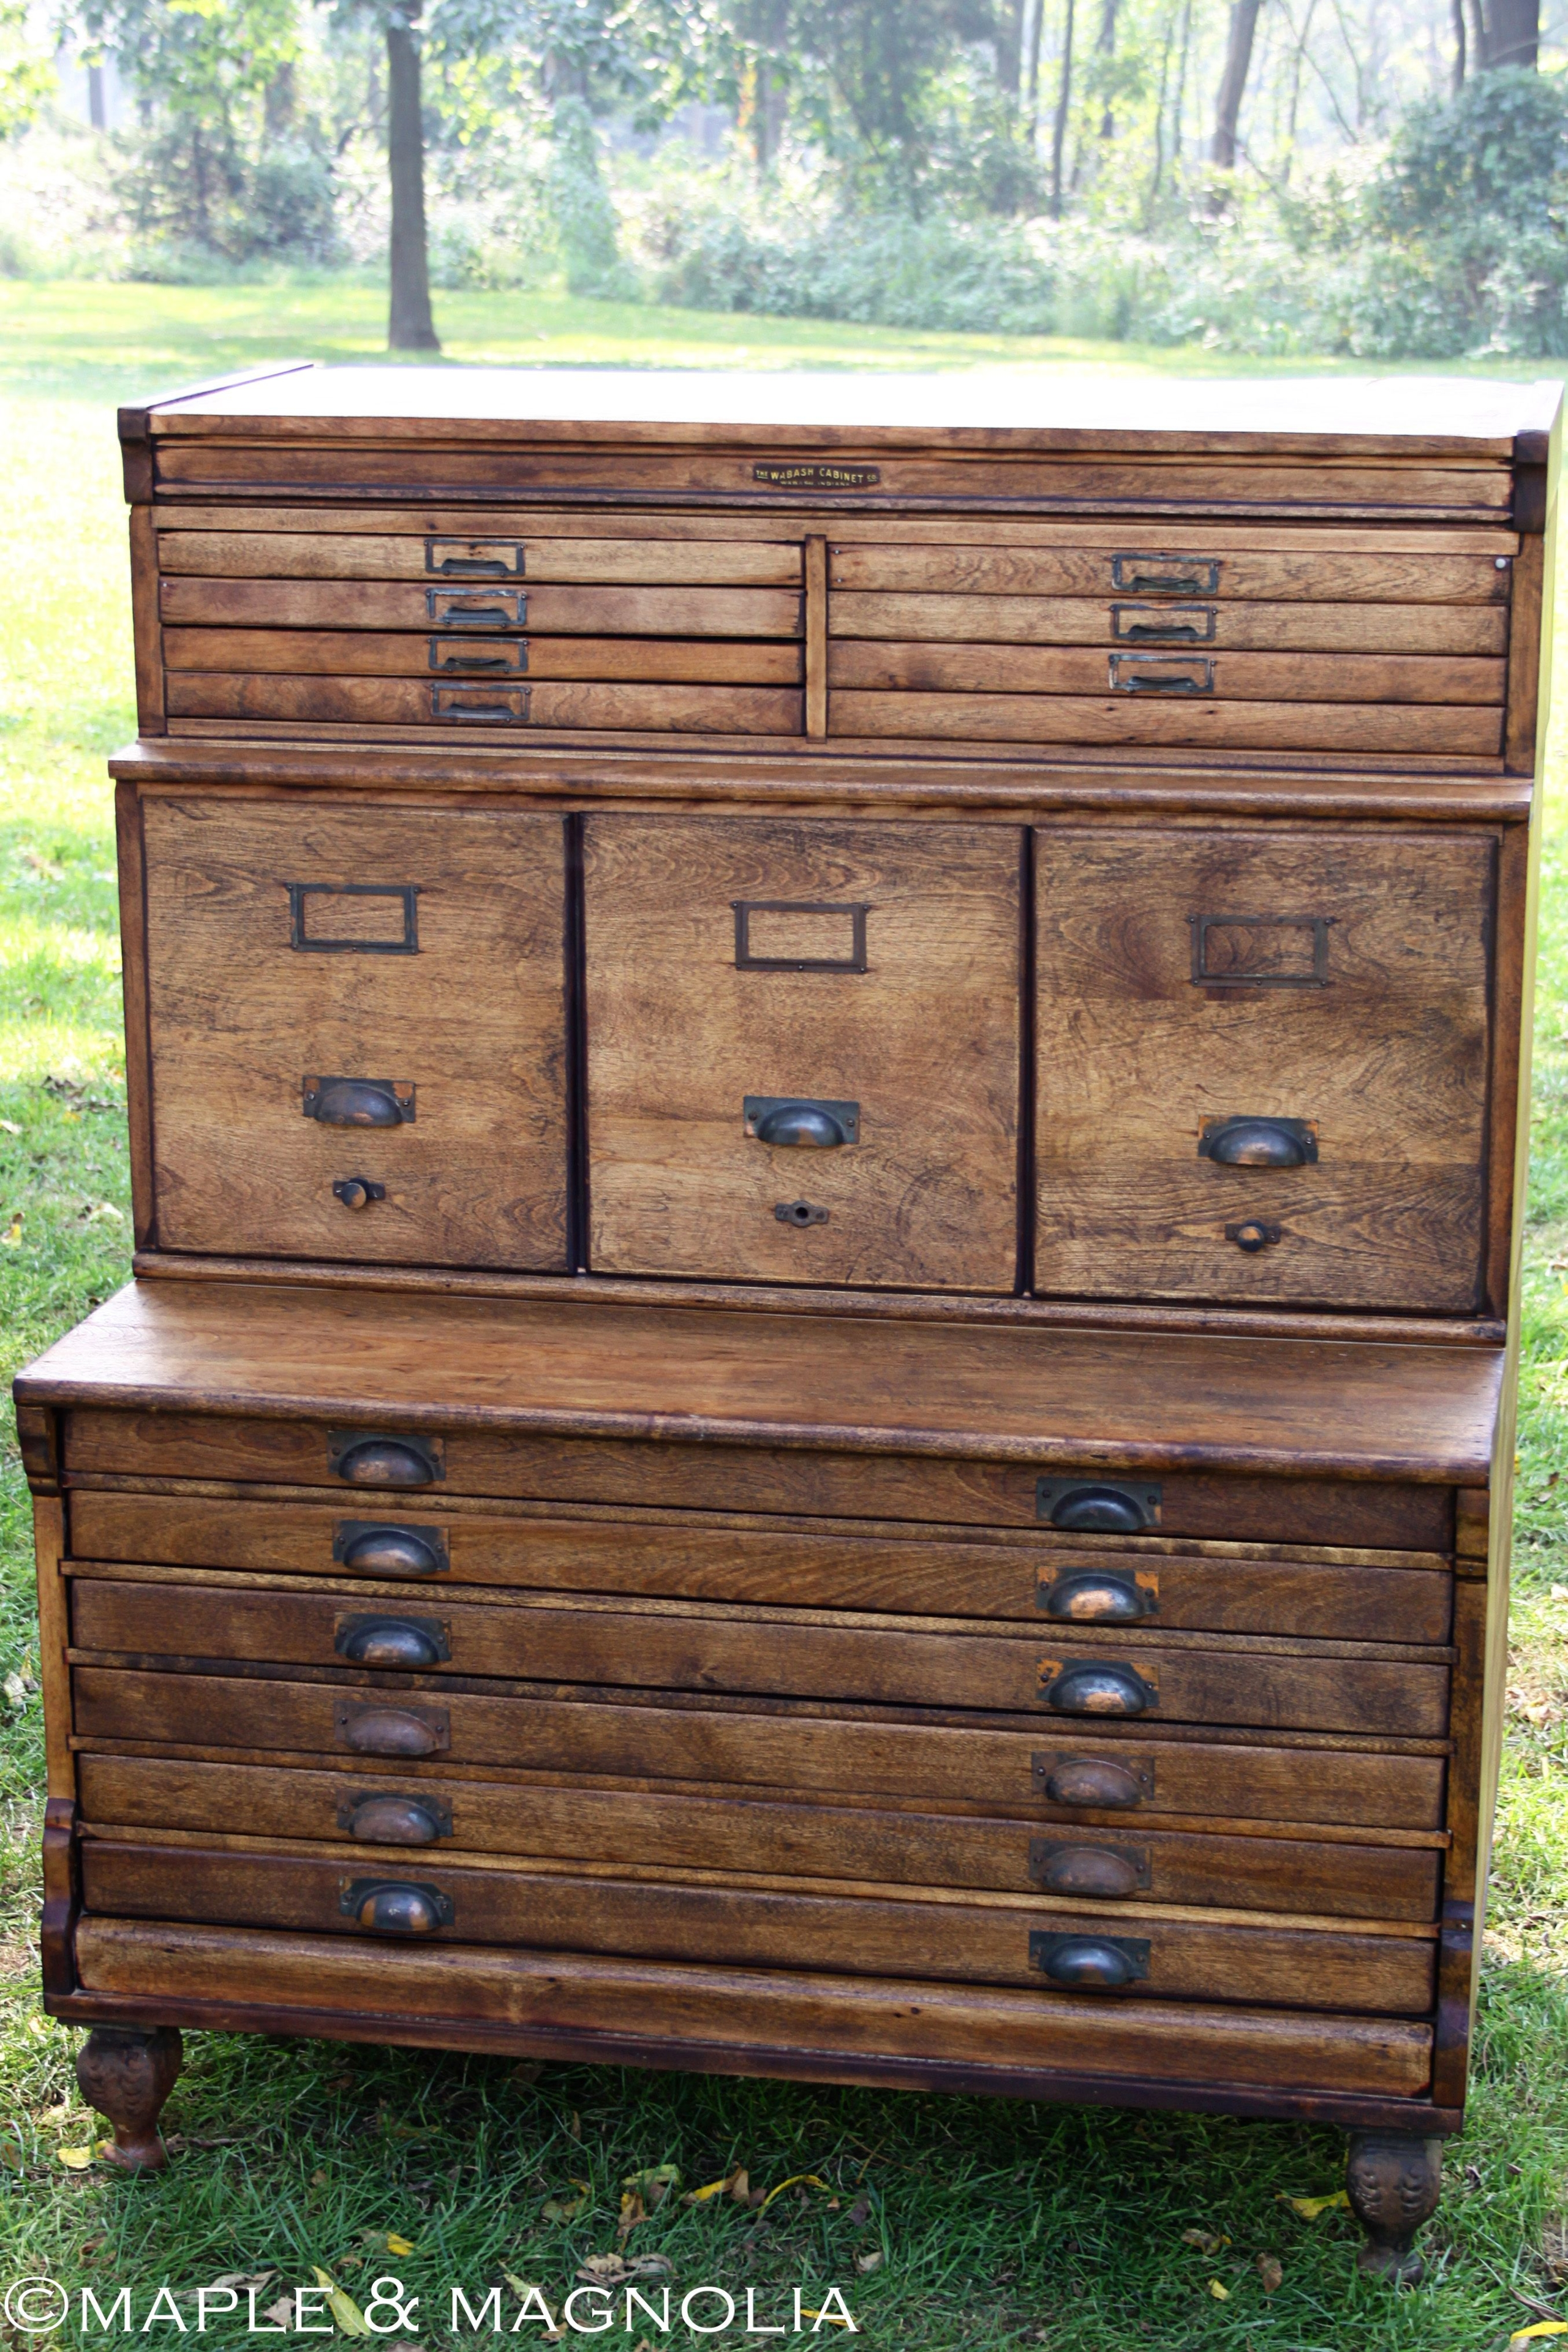 Charmant Cabinet With Many Small Drawers 1